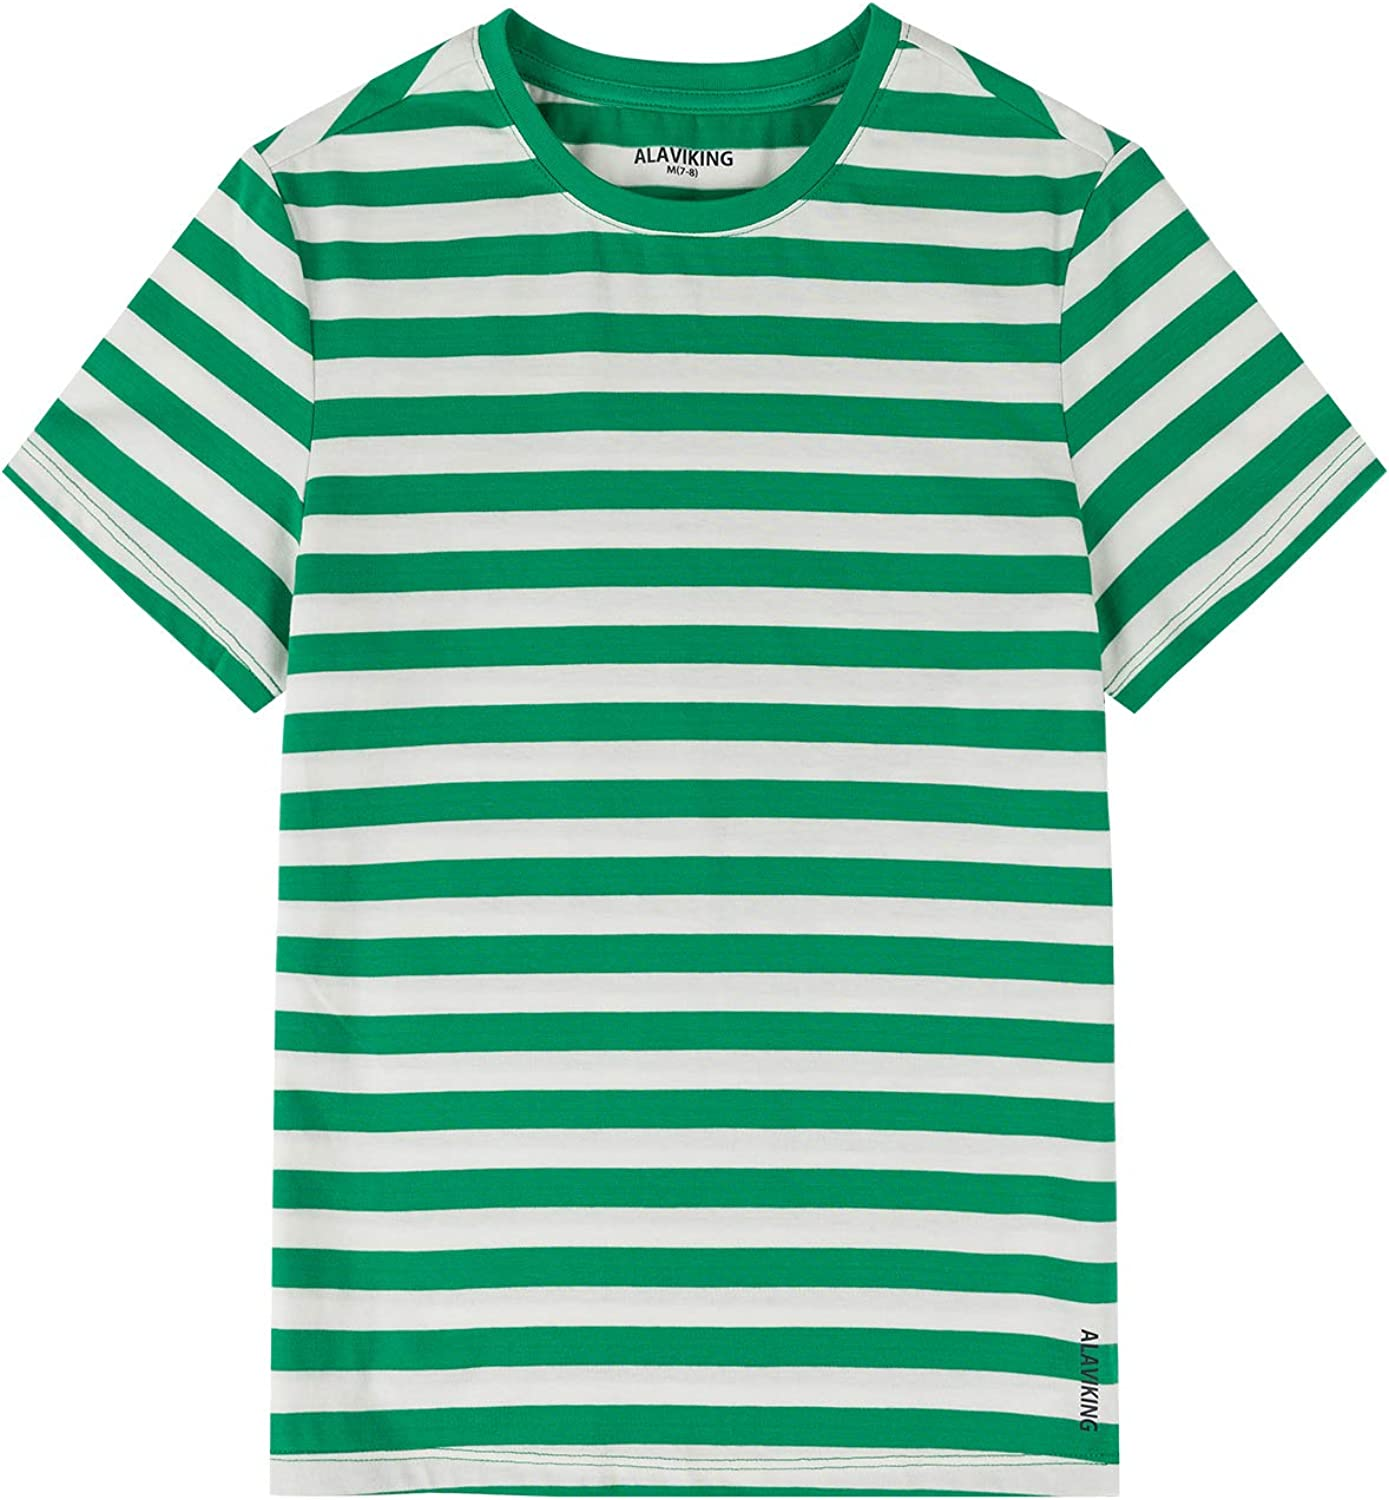 ALAVIKING Kids T Shirts Youth Short Sleeve Striped T-Shirts Crewneck Cotton T Shirts for Boys or Girls Size 3-12 Years